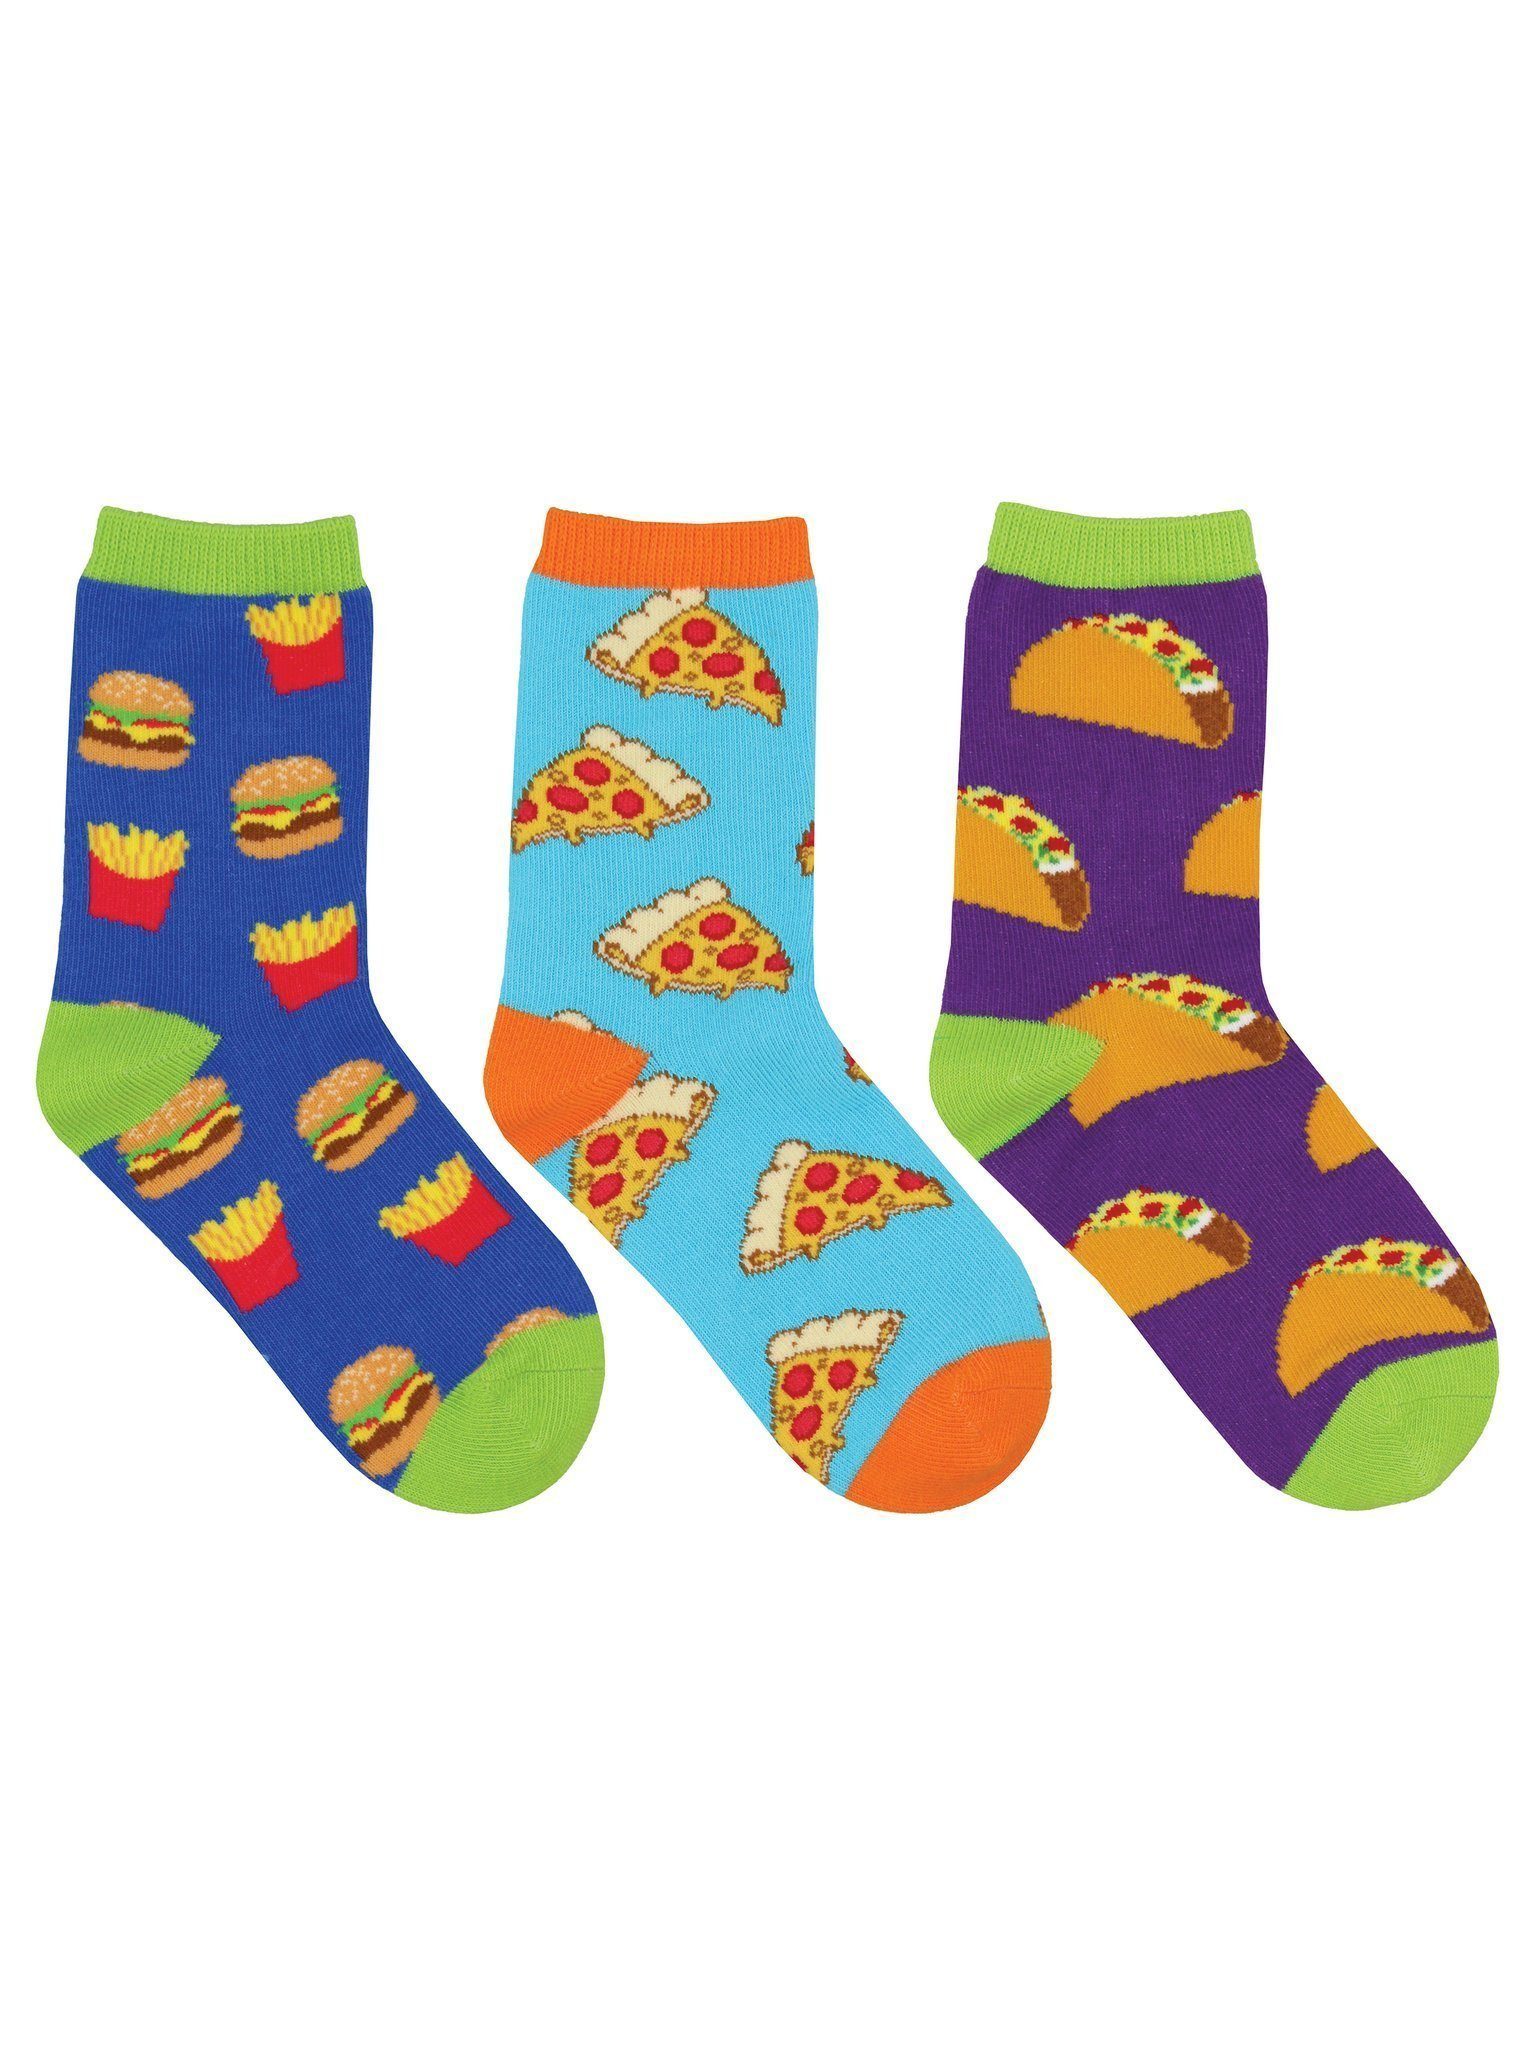 Socksmith - Yummy in My Tummy 3-pack Crew Socks | Kids' - Knock Your Socks Off